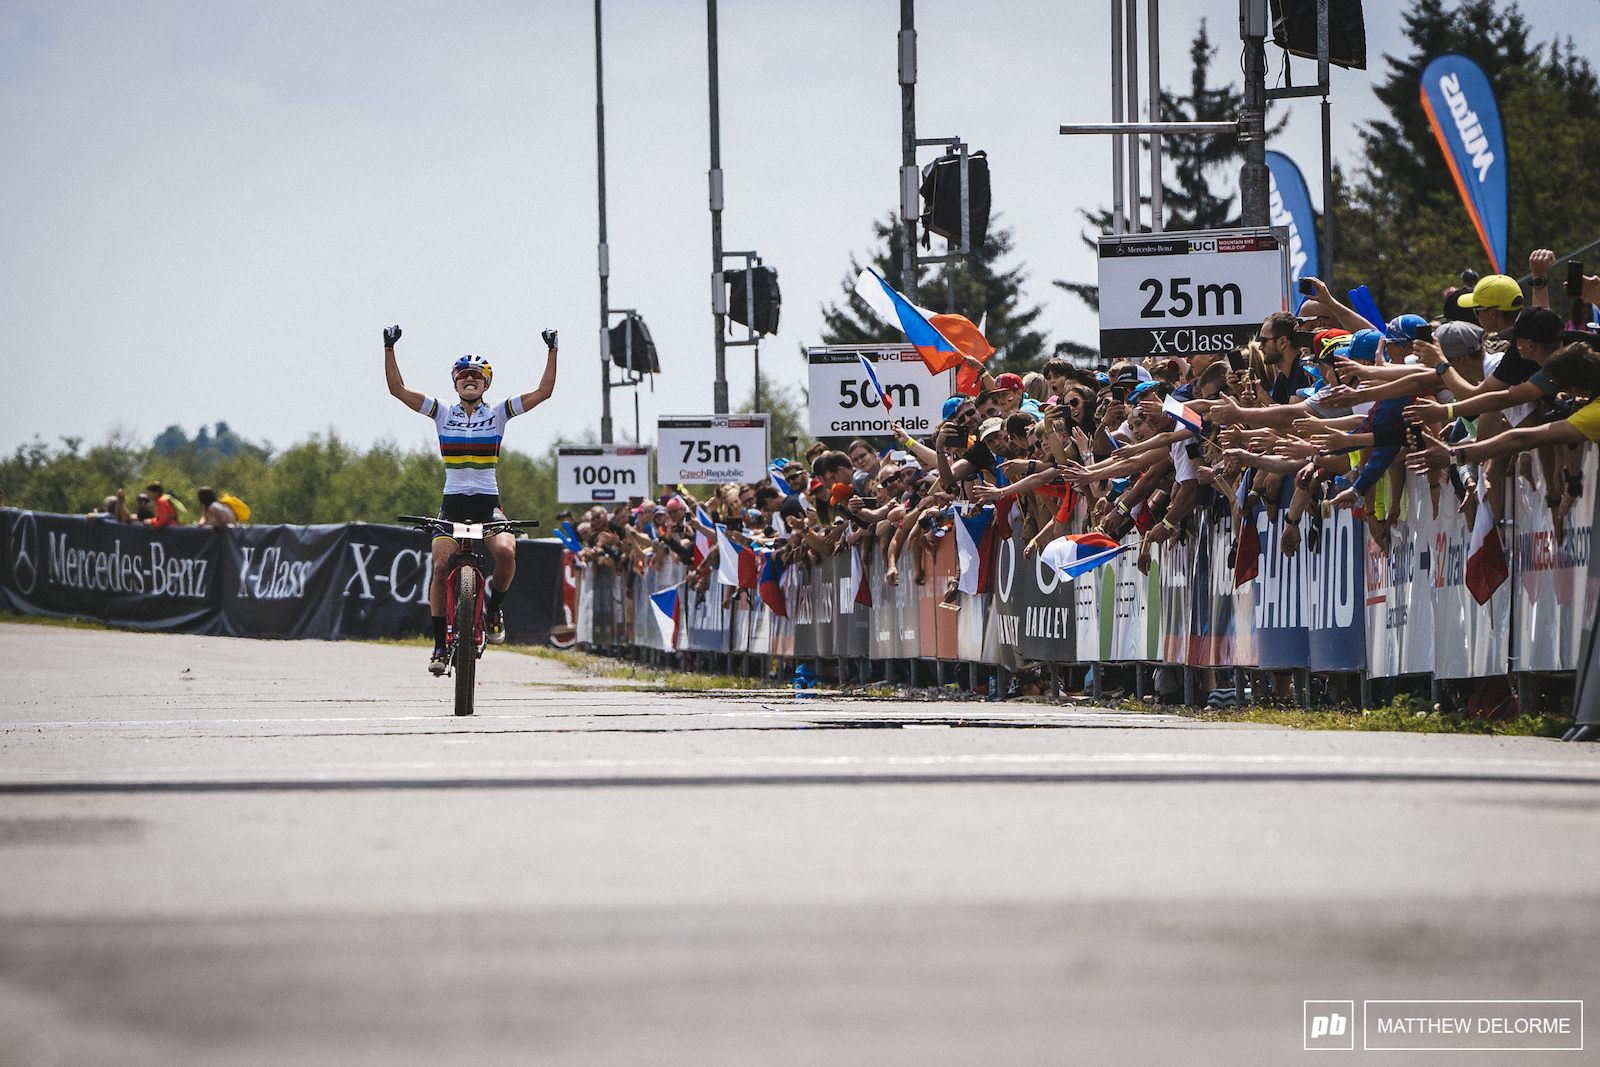 Kate Courtney turned a race she thought had slipped away around to another win.